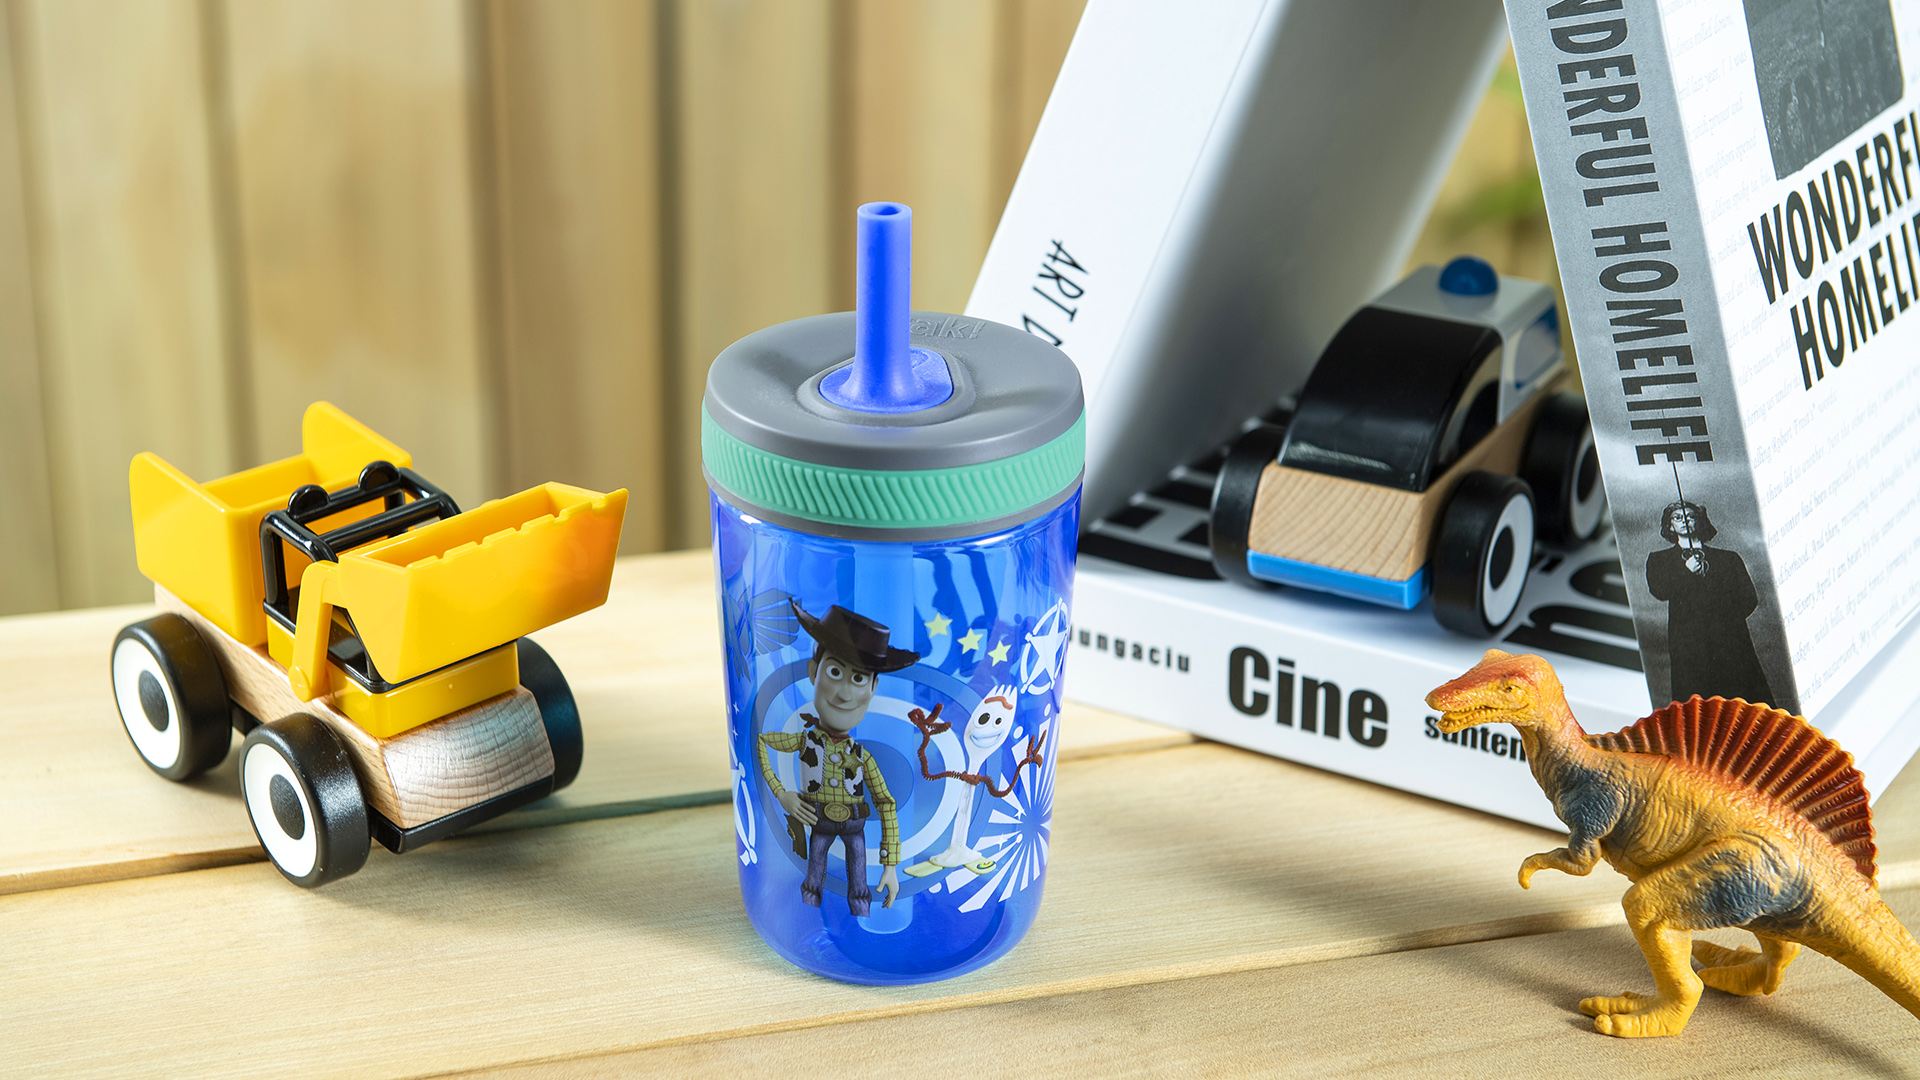 Disney and Pixar 15  ounce Plastic Tumbler with Lid and Straw, Buzz Lightyear and Friends, 2-piece set slideshow image 7